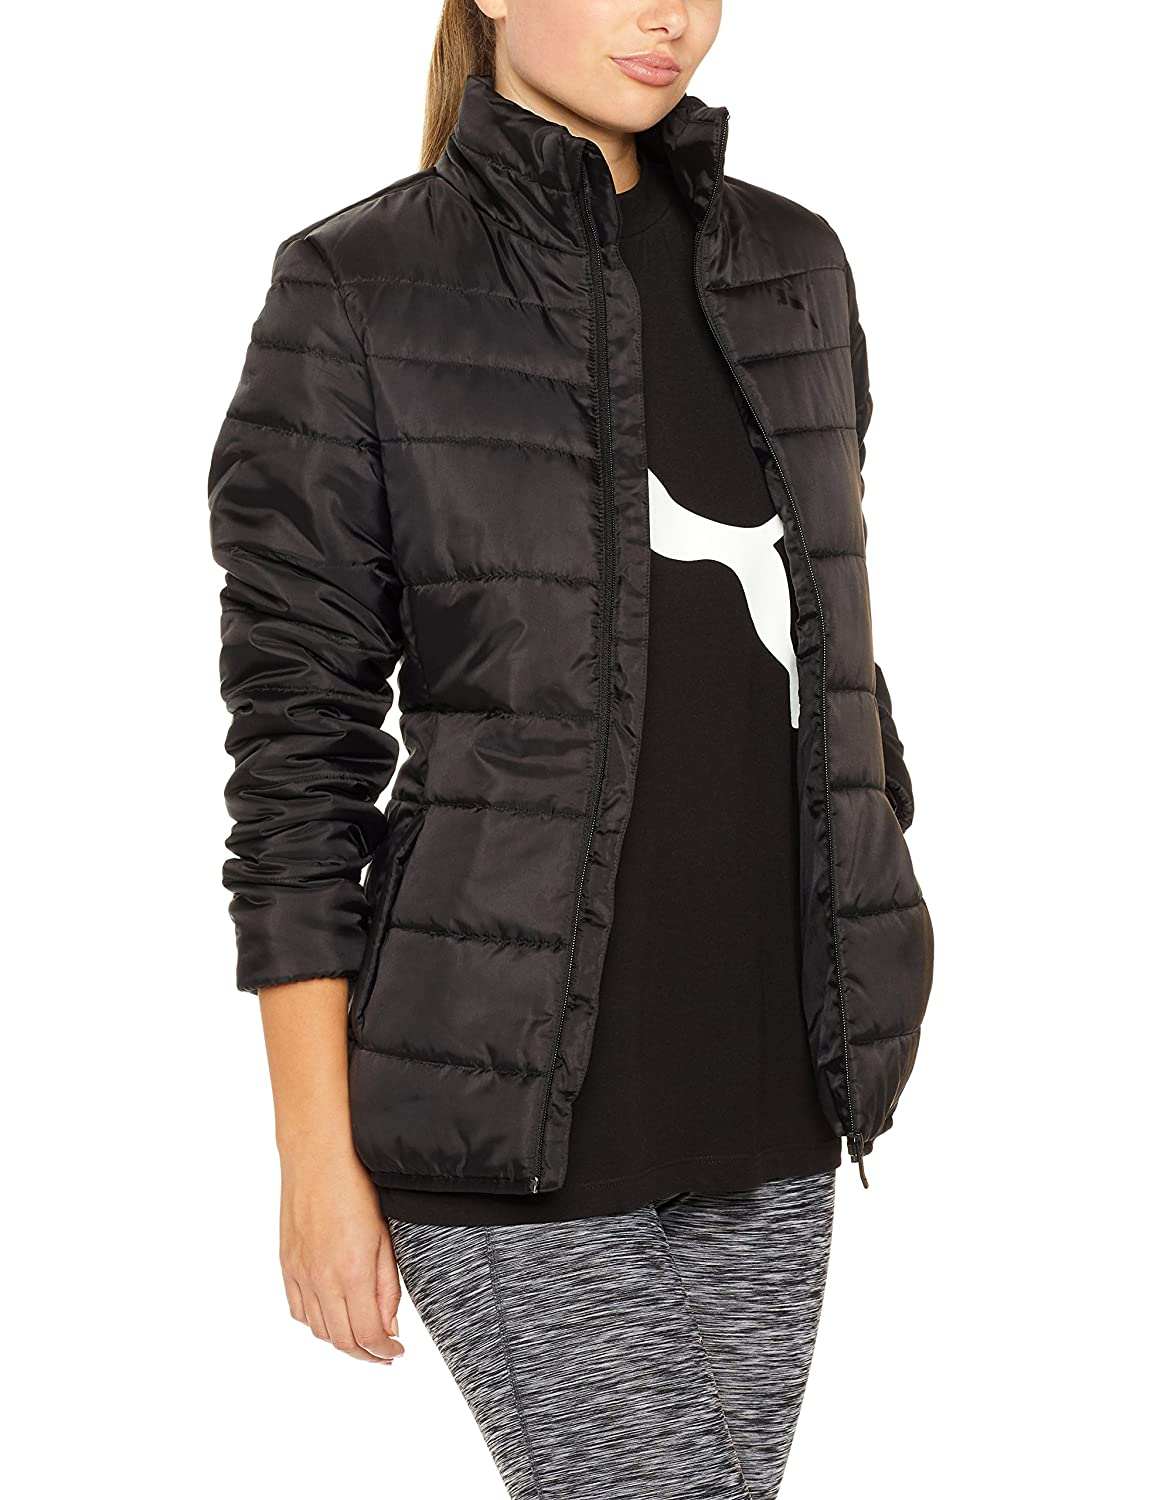 ea1fd6a10ae PUMA Women's Essentials Padded Jacket Black (Puma Black),XS: Amazon.com.au:  Fashion